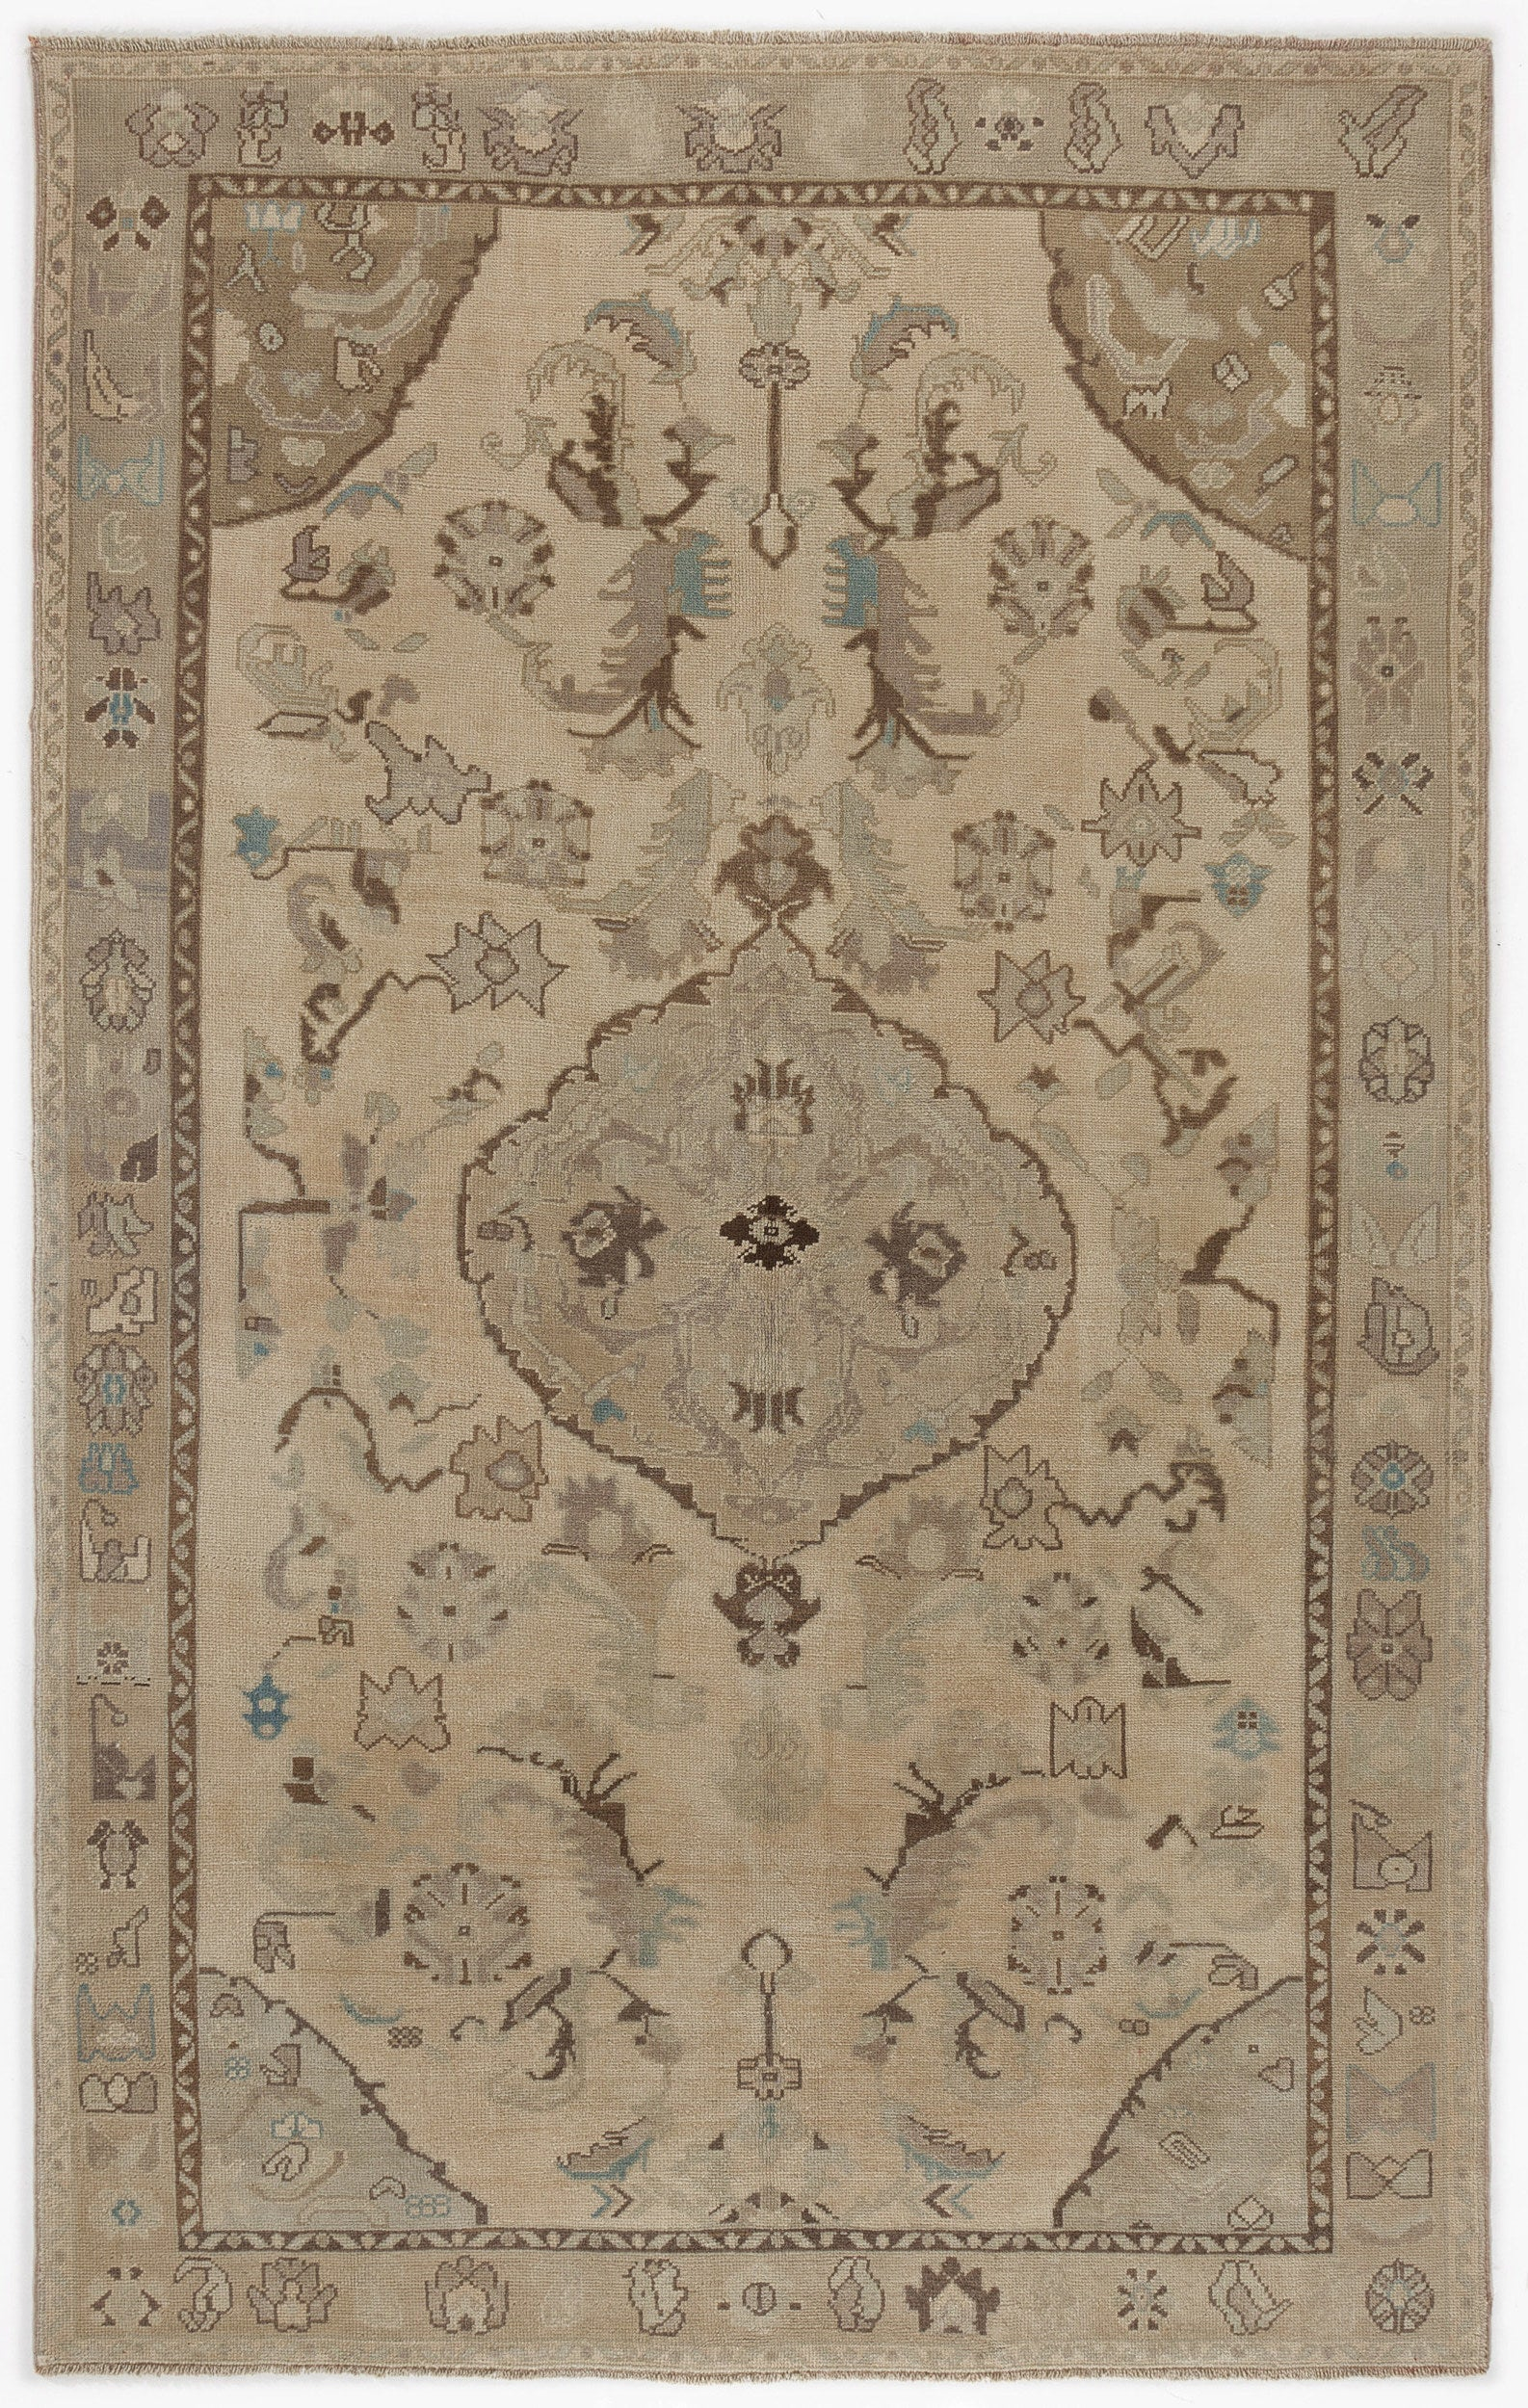 Beige Over Dyed Heritage Rug 6'2'' x 10'0'' ft 188 x 306 cm